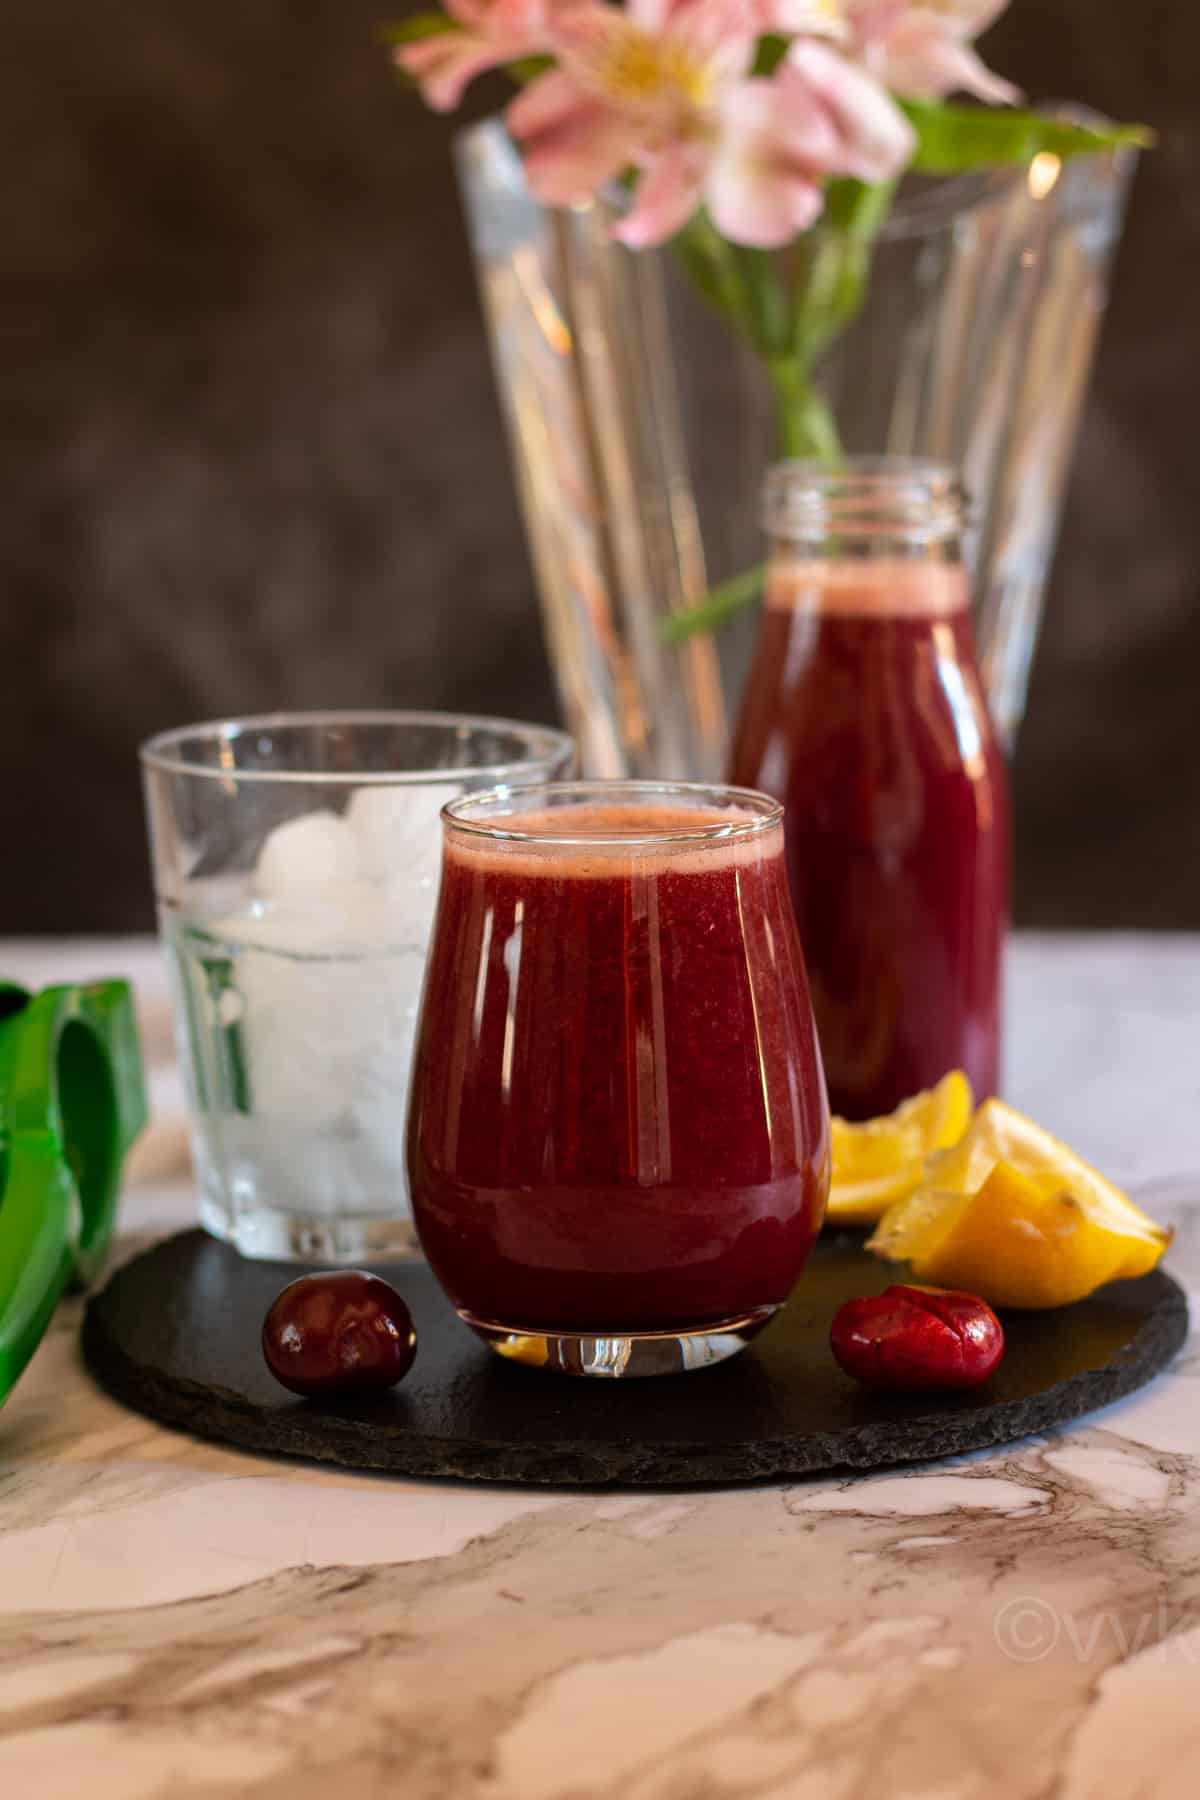 homemade cherry juice with the syrup placed on a slate board with lemon wedges and cherries on the side